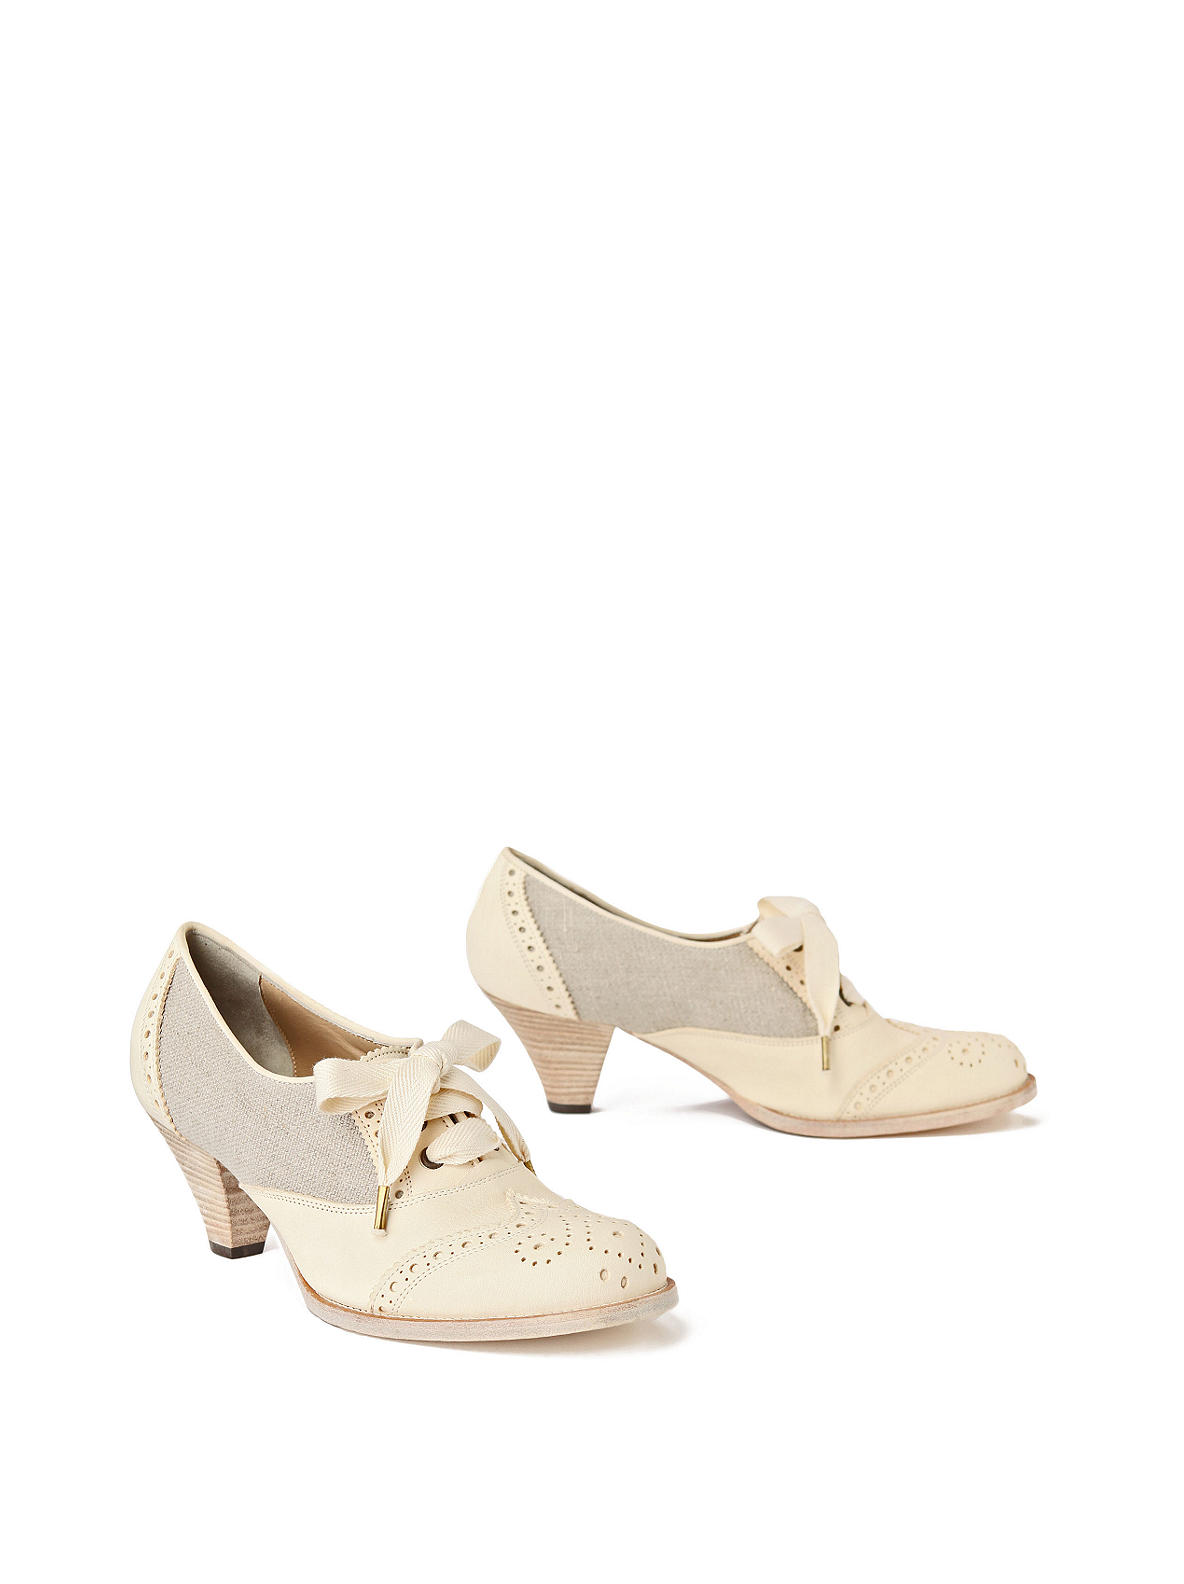 East Egg Brogues - Anthropologie.com :  garden laceup anthropologie egg